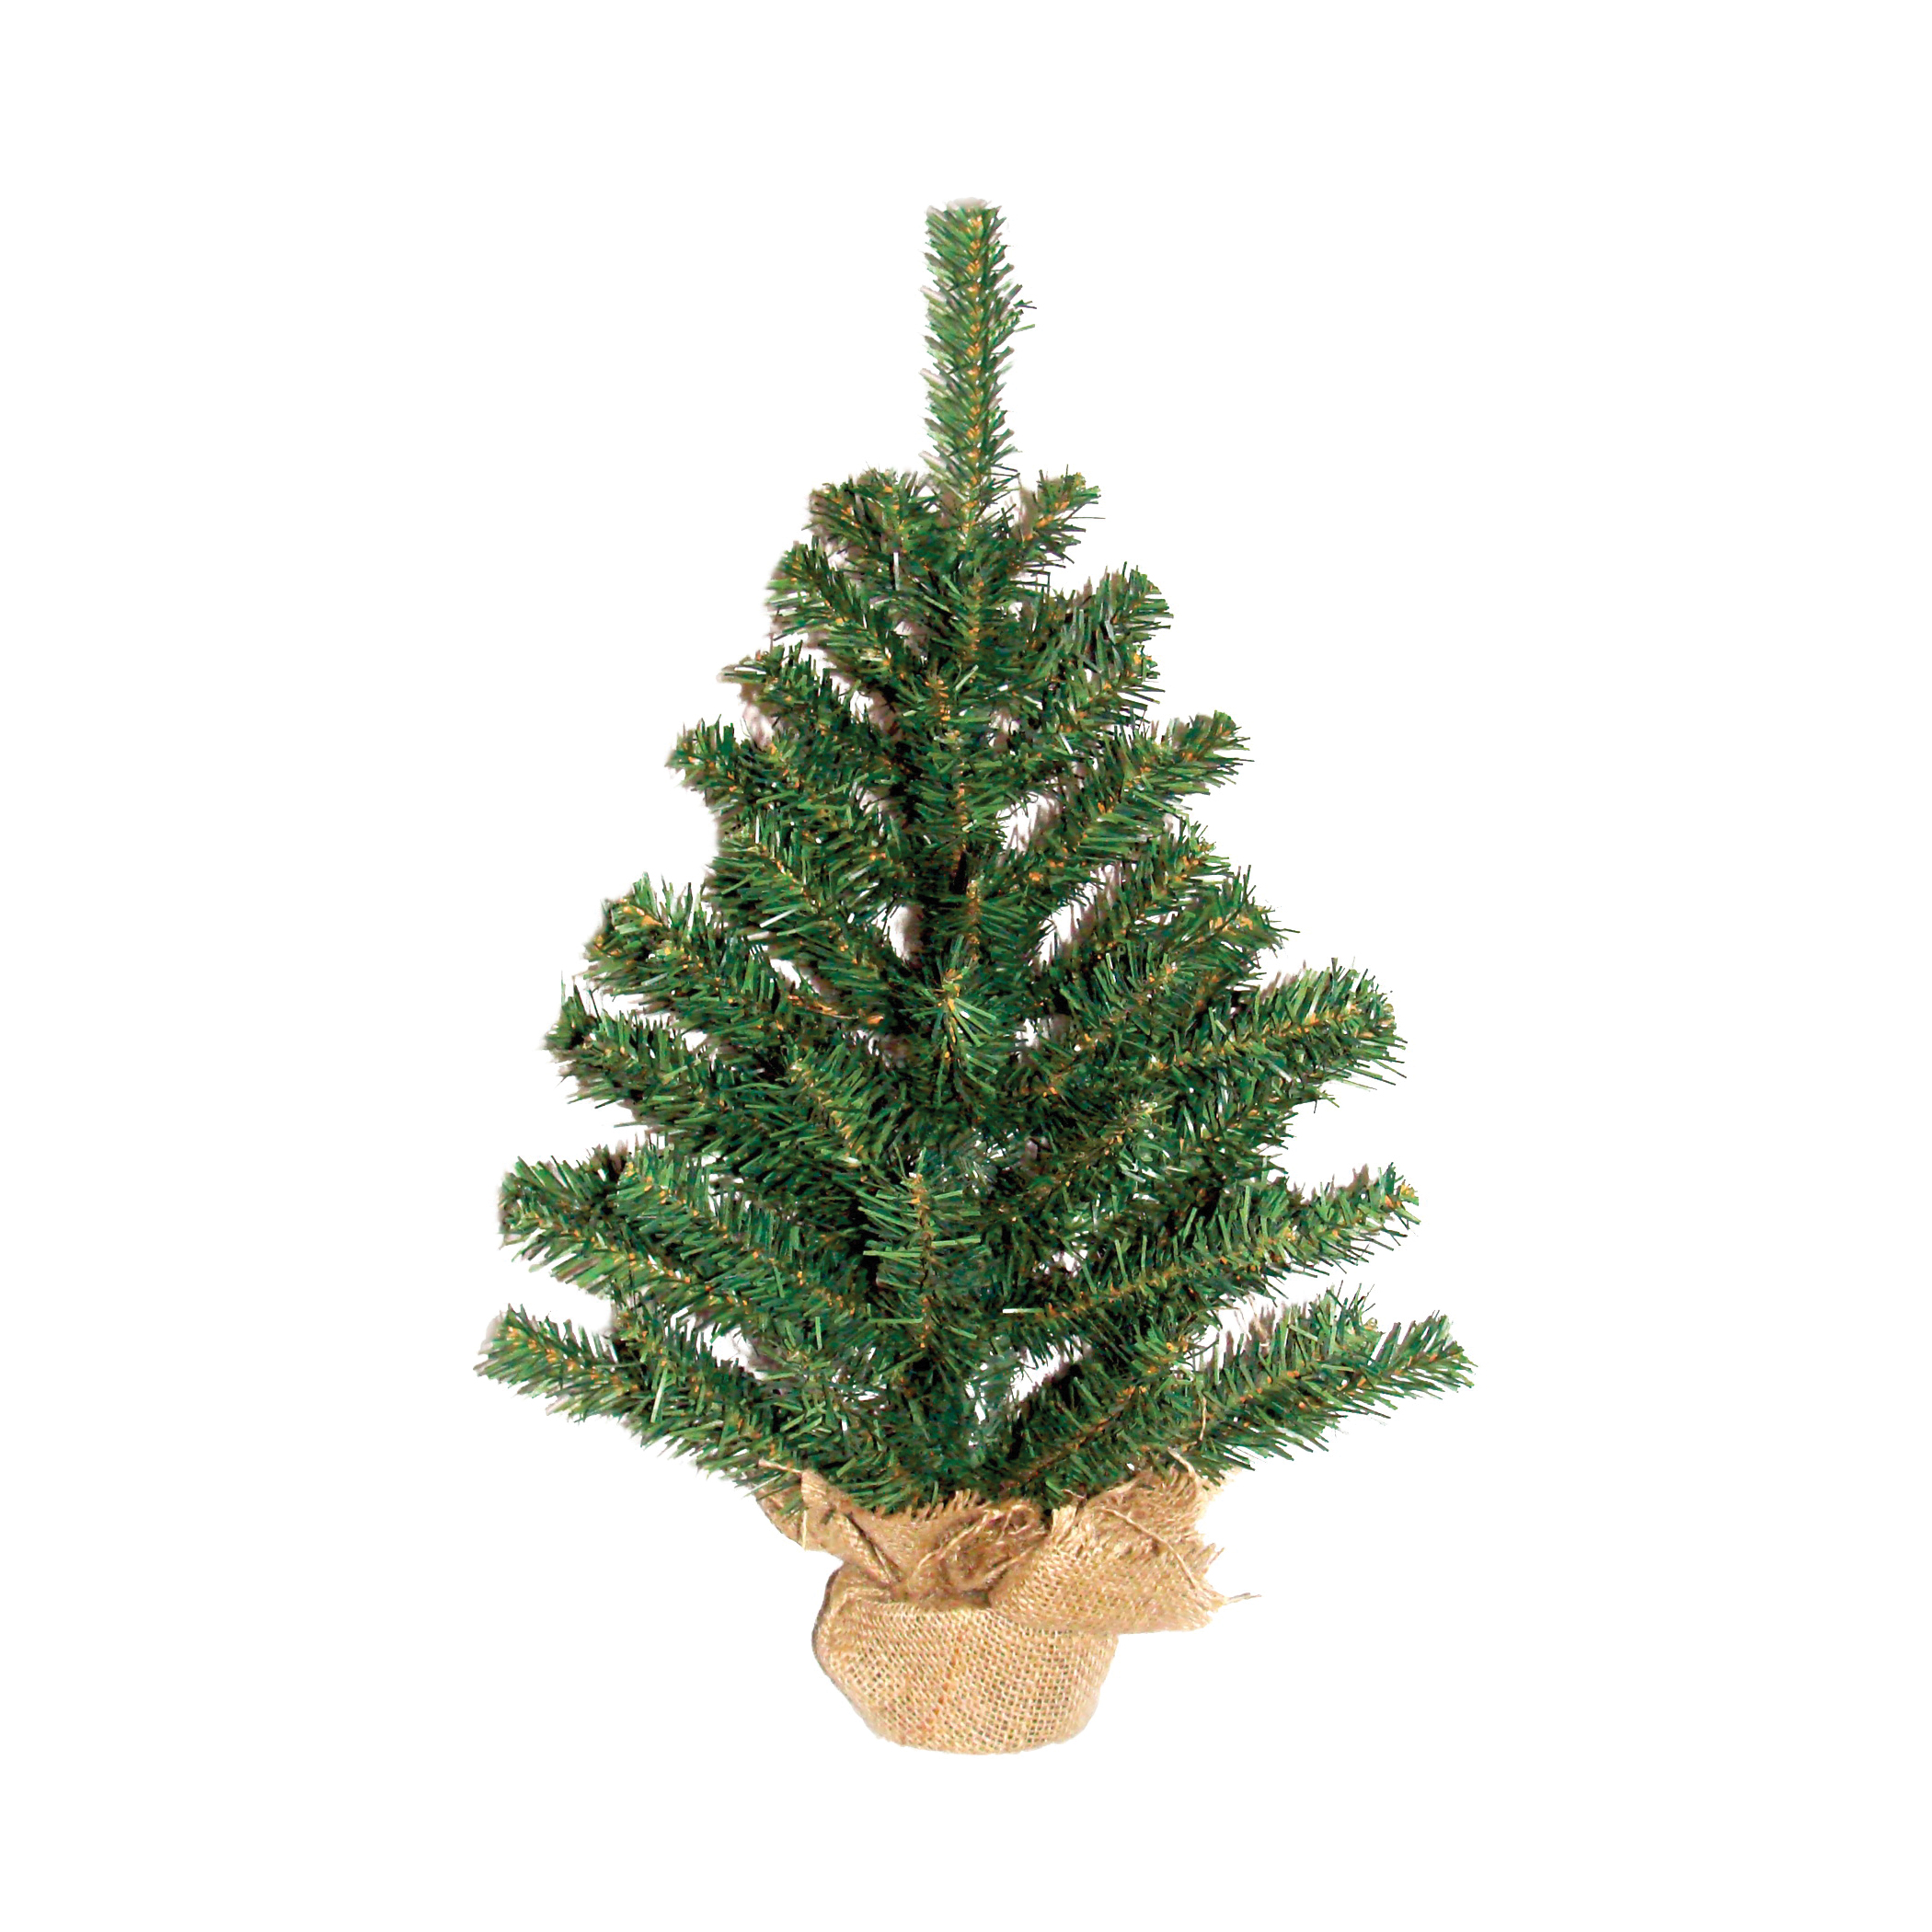 Picture of Santas Forest 11124 Ball and Burlap Tree, 24 in H, Tree, Fir Family, PVC & Burlap, Indoor/Outdoor